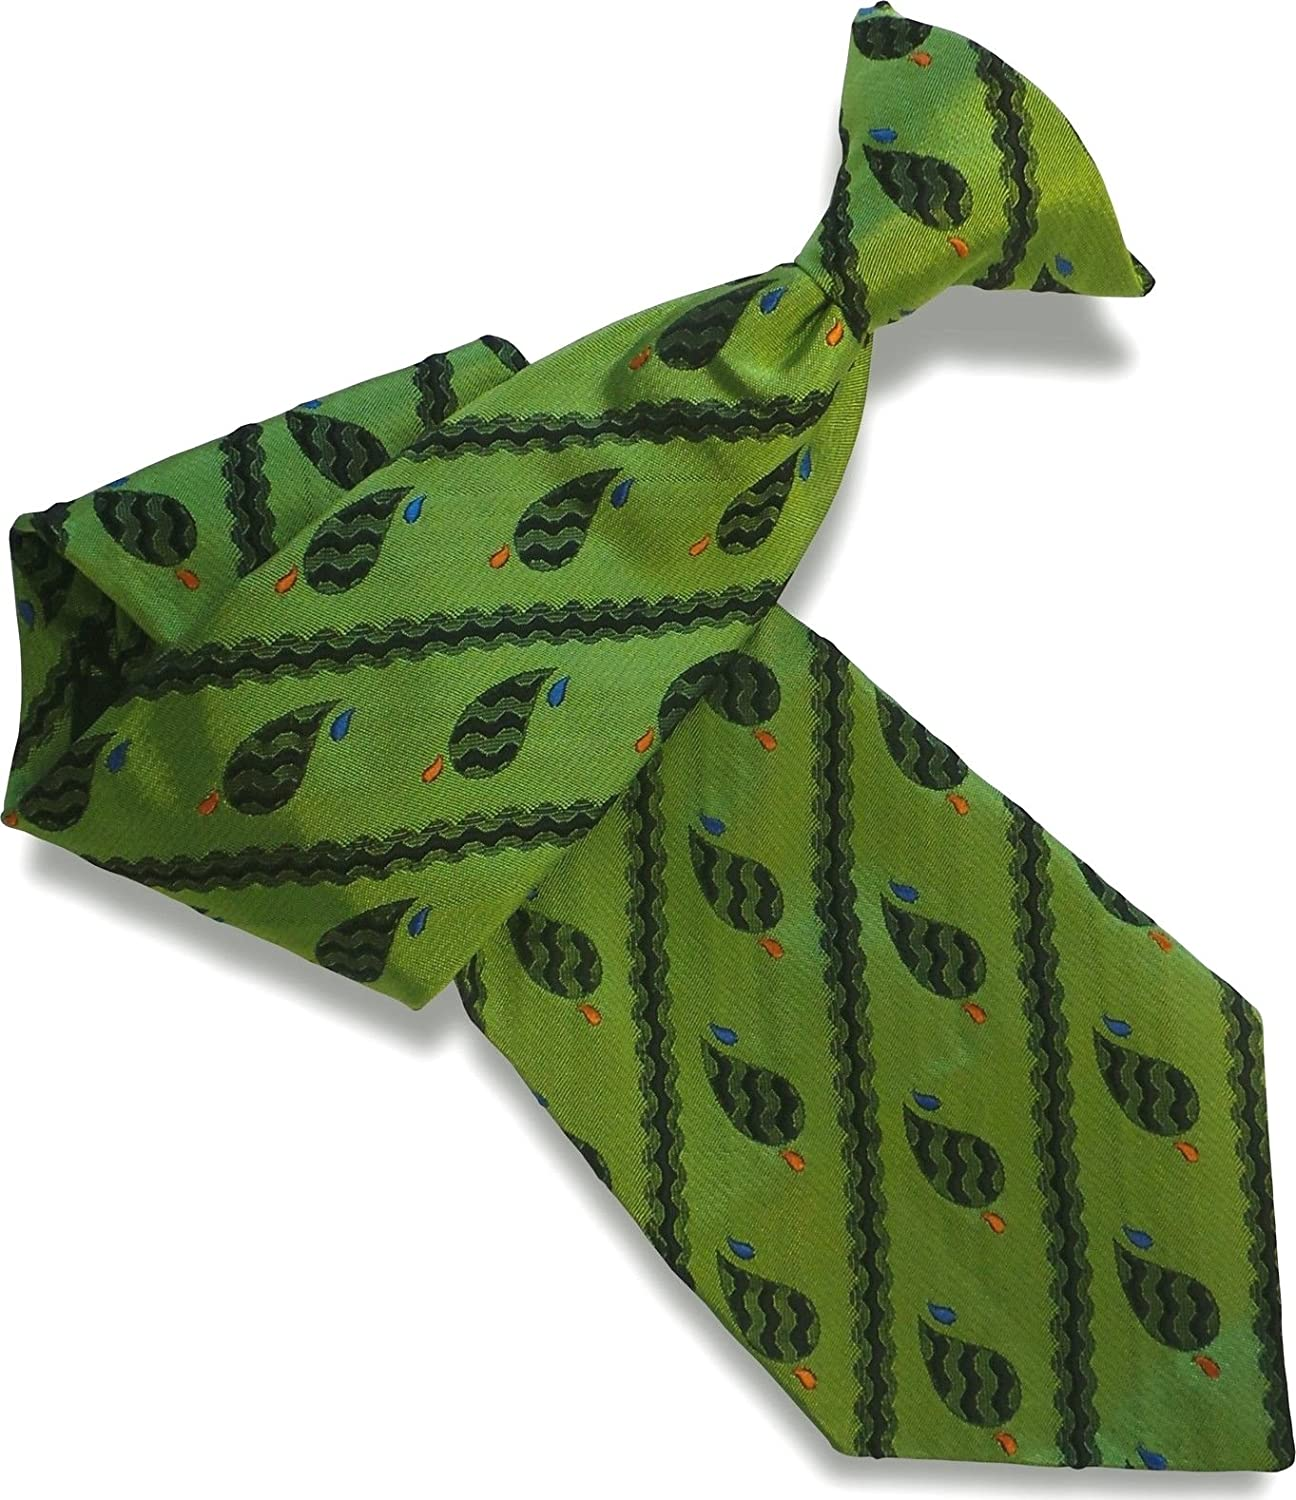 Men's Silk Clip On Tie - Green with Black Paisley & Stripes